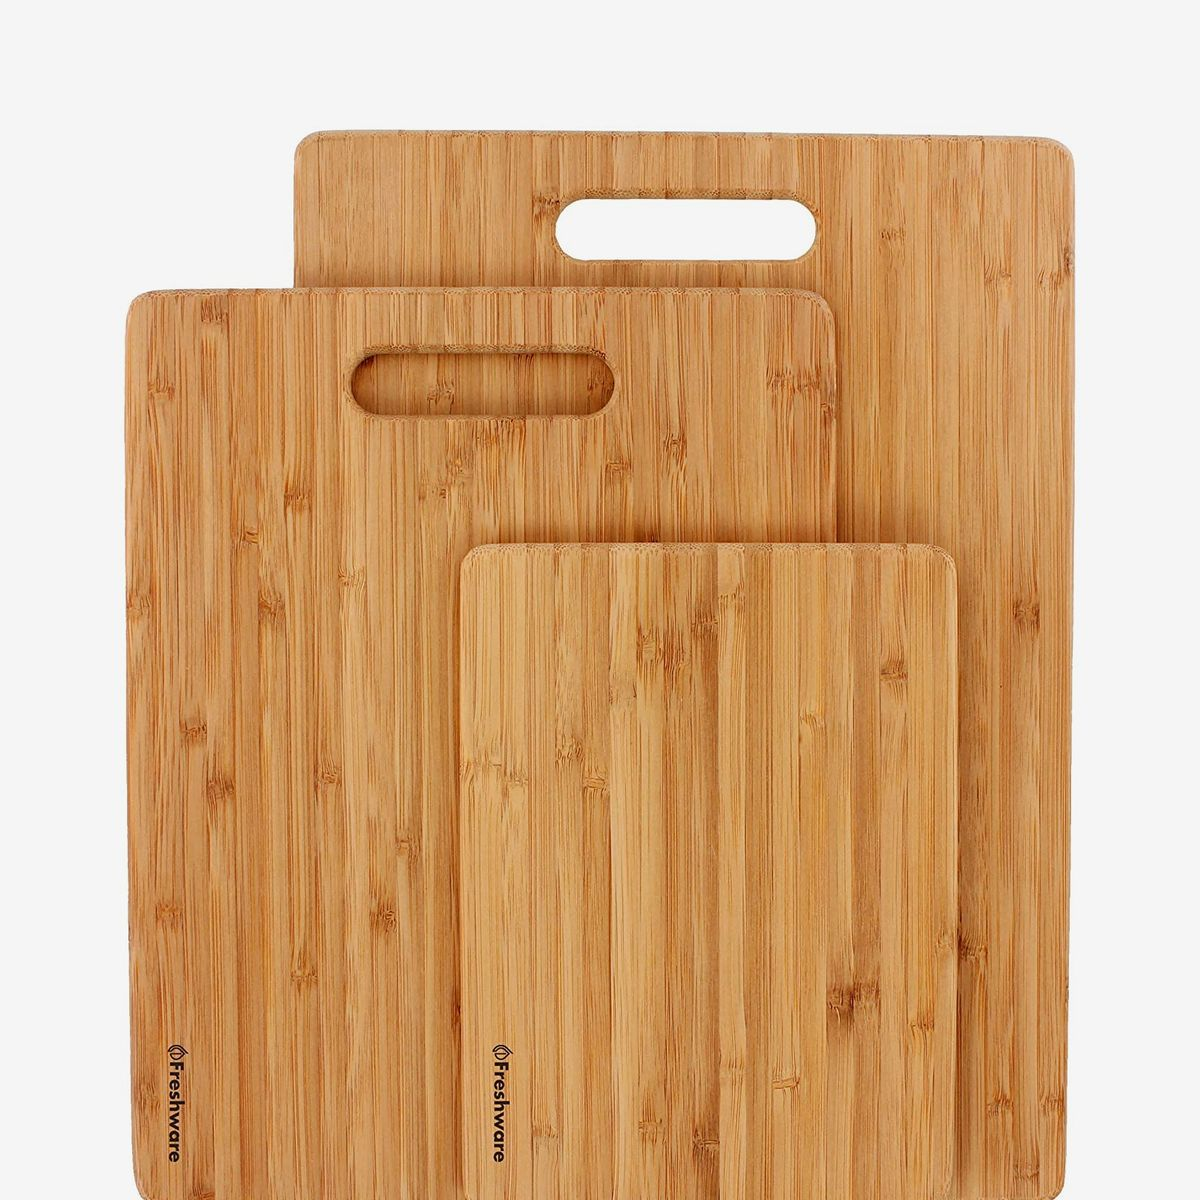 A set of three wooden cutting boards in varying sizes